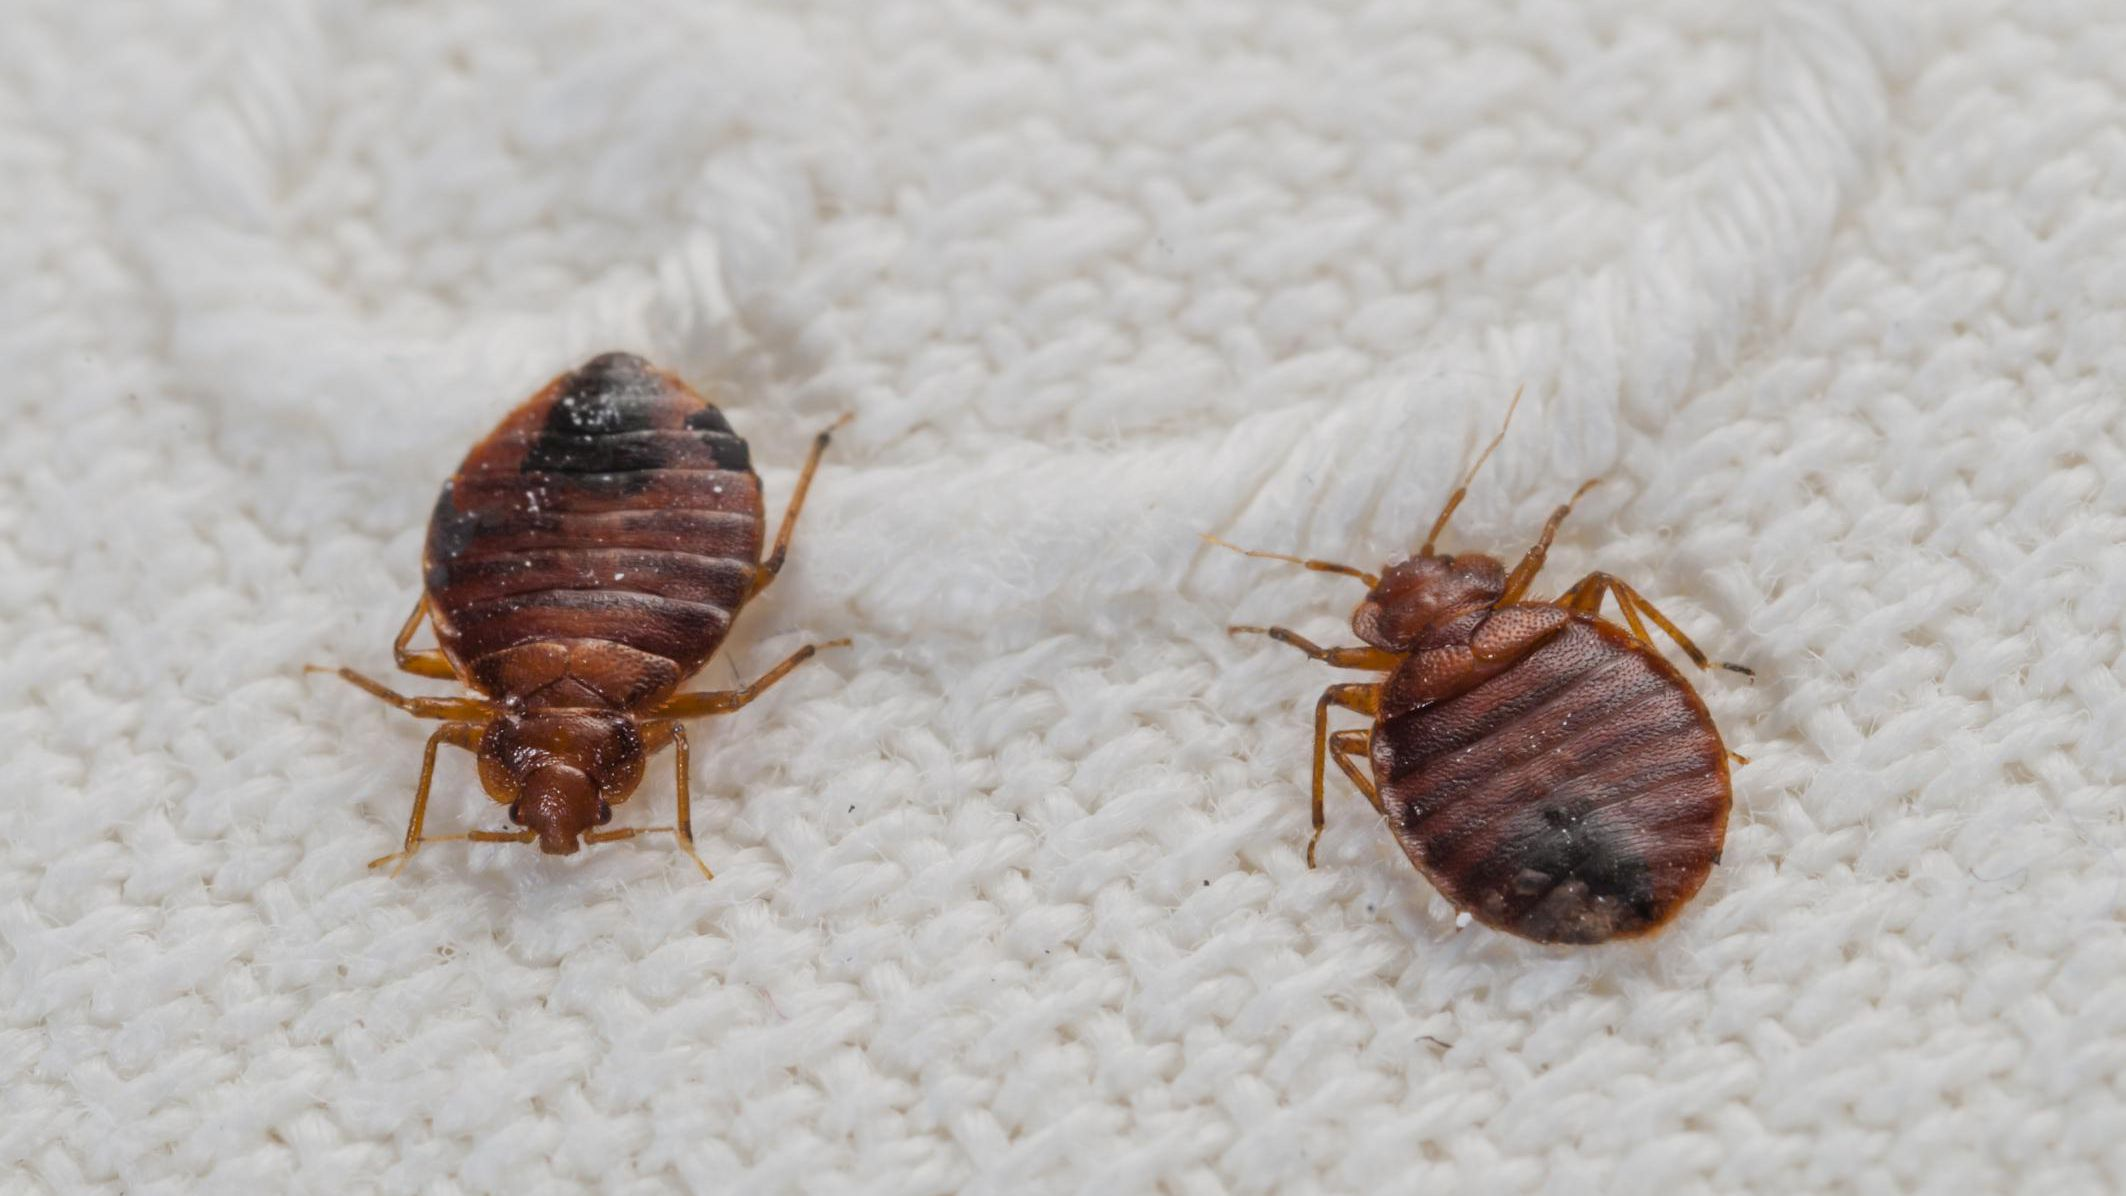 How To Wash Laundry Infested With Bedbugs